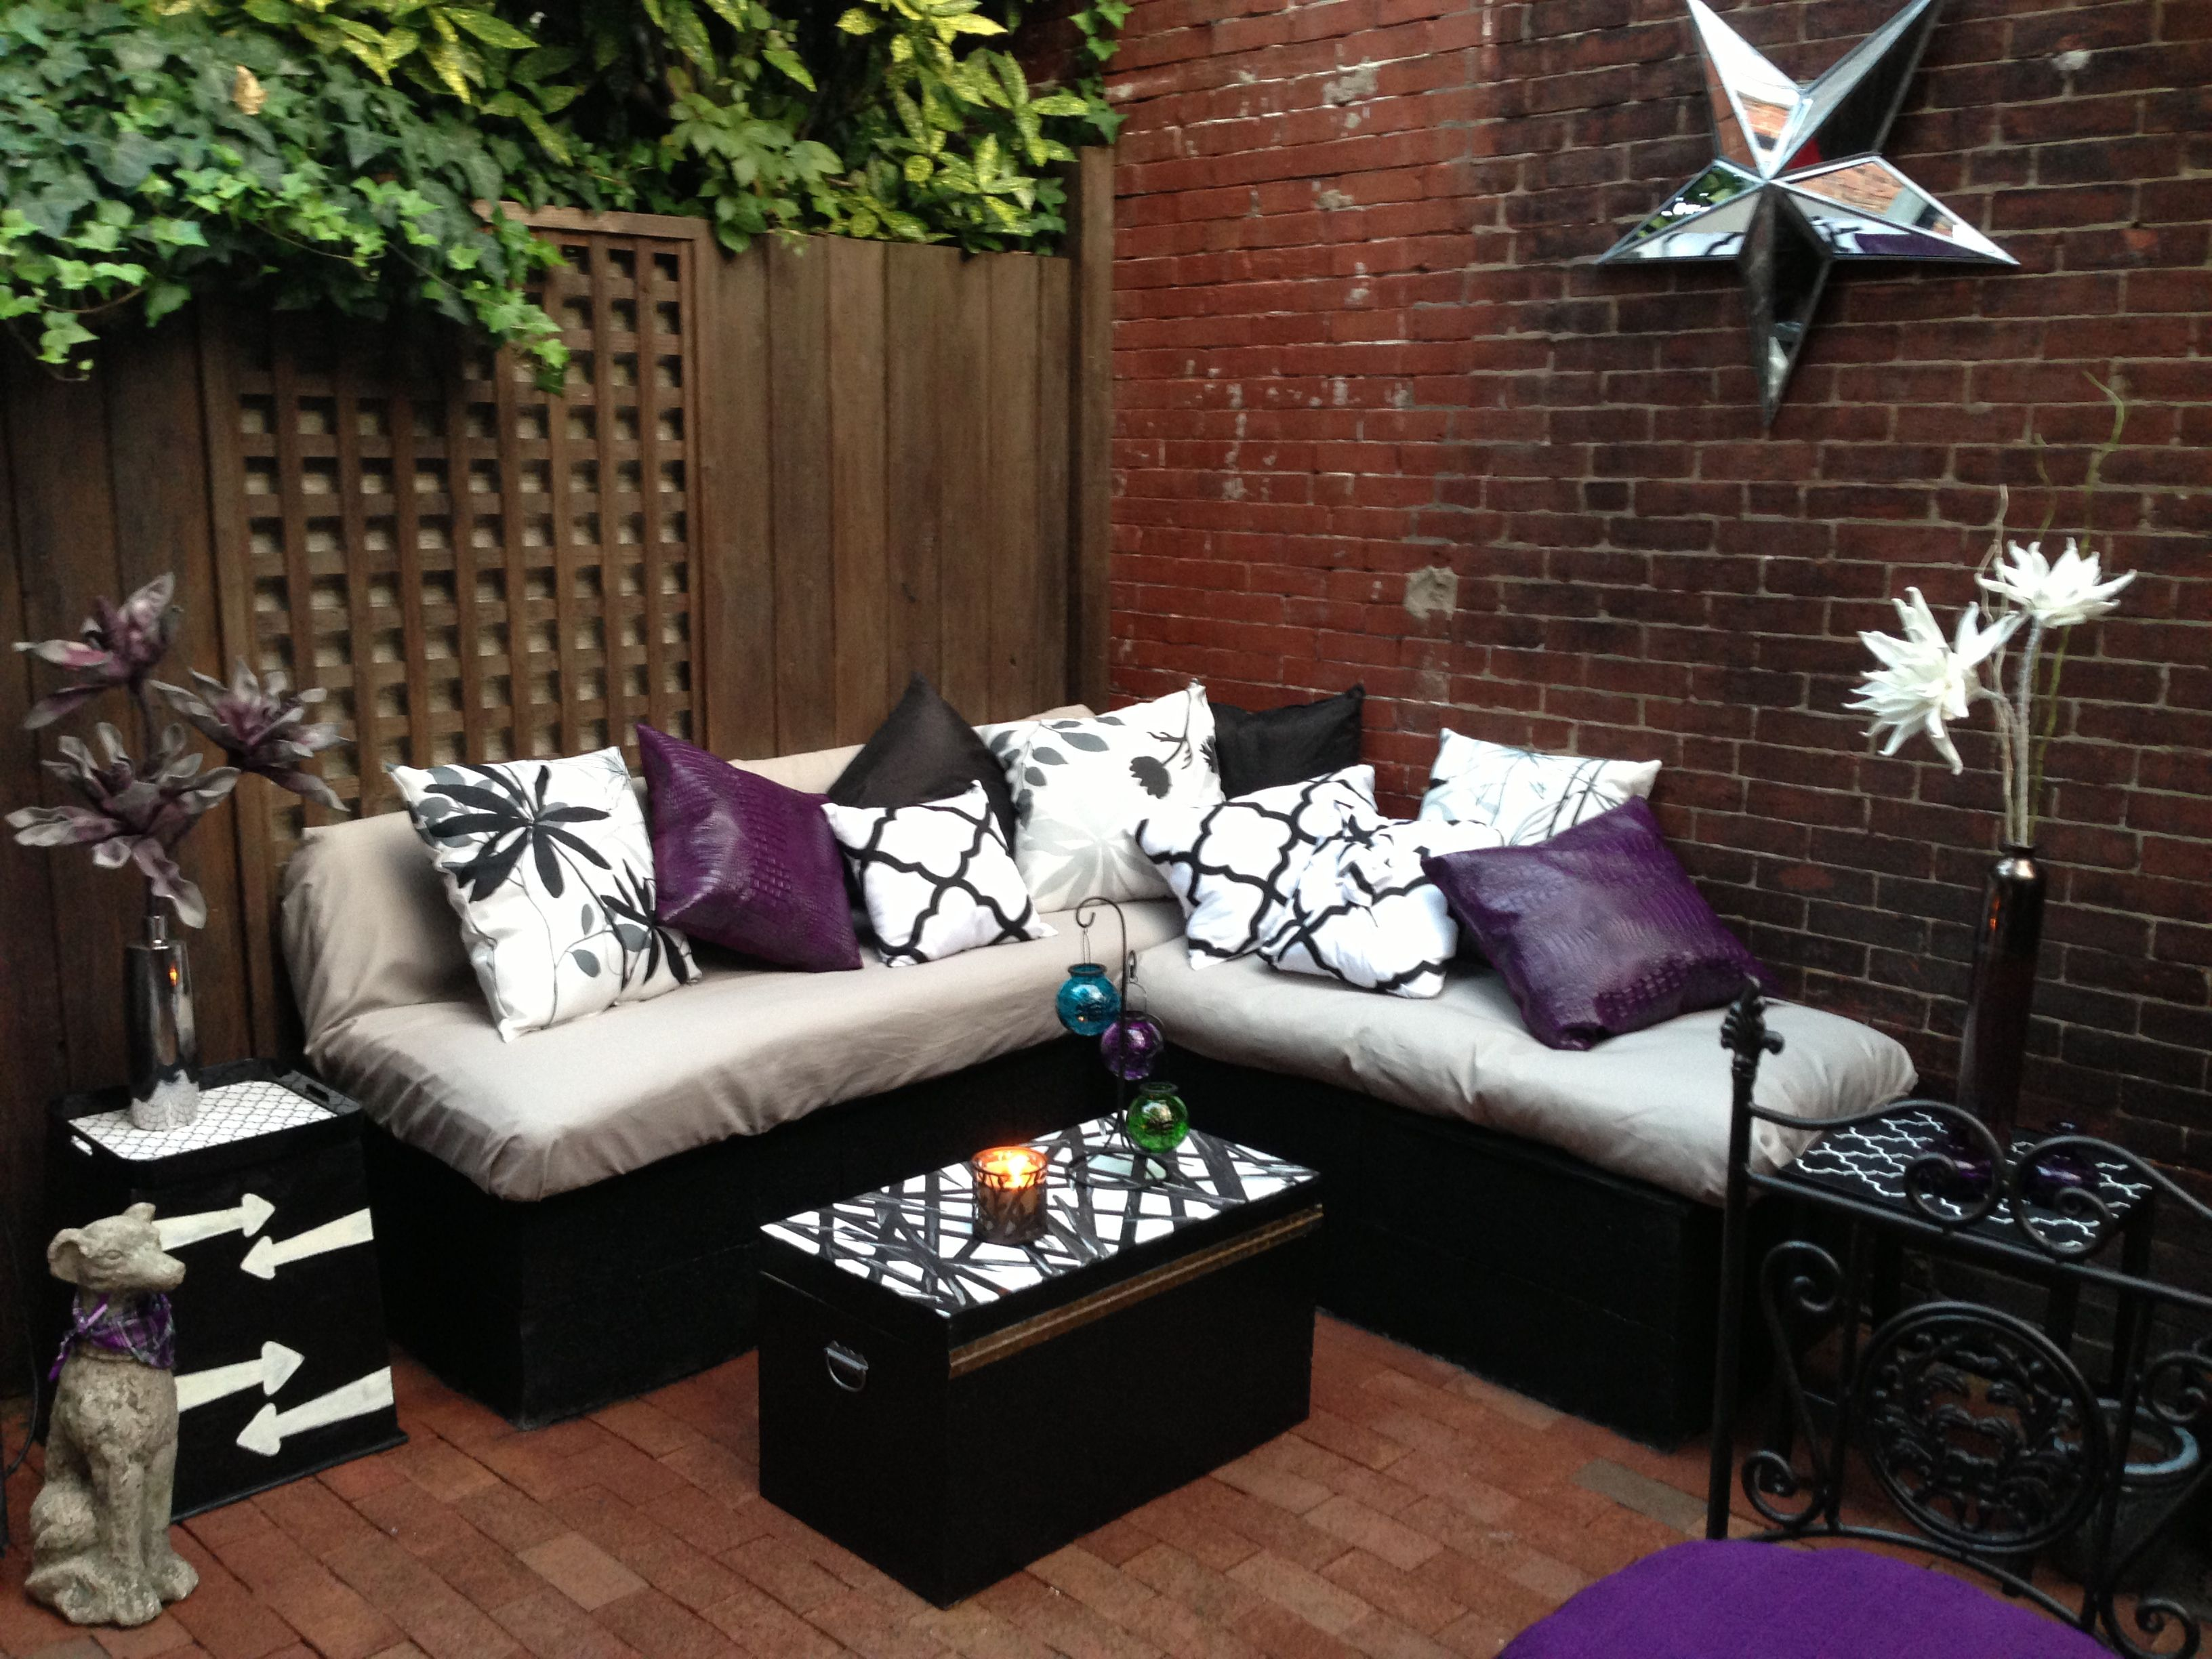 Diy patio furniture cinder blocks - Diy Lounge Seating Cinder Block And Black Spray Paint As The Base